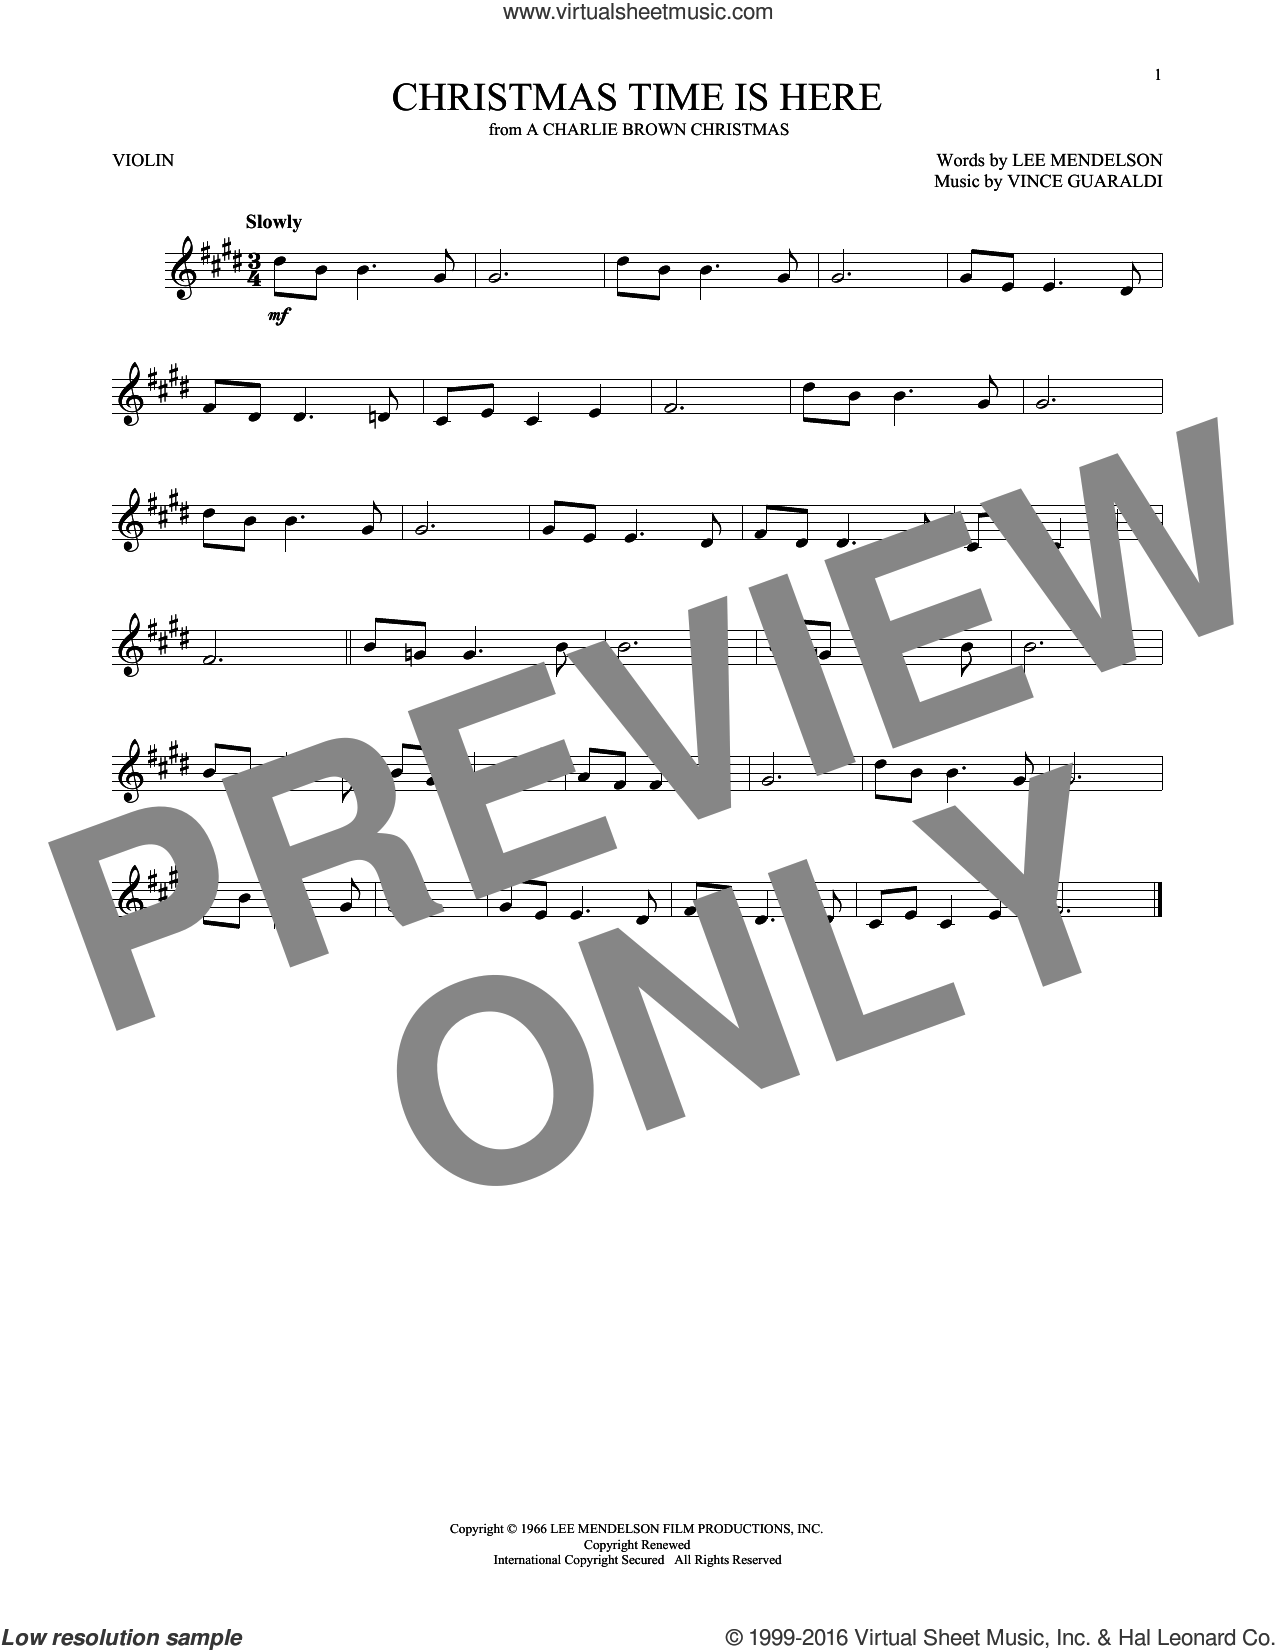 Christmas Time Is Here sheet music for violin solo by Vince Guaraldi and Lee Mendelson, intermediate skill level